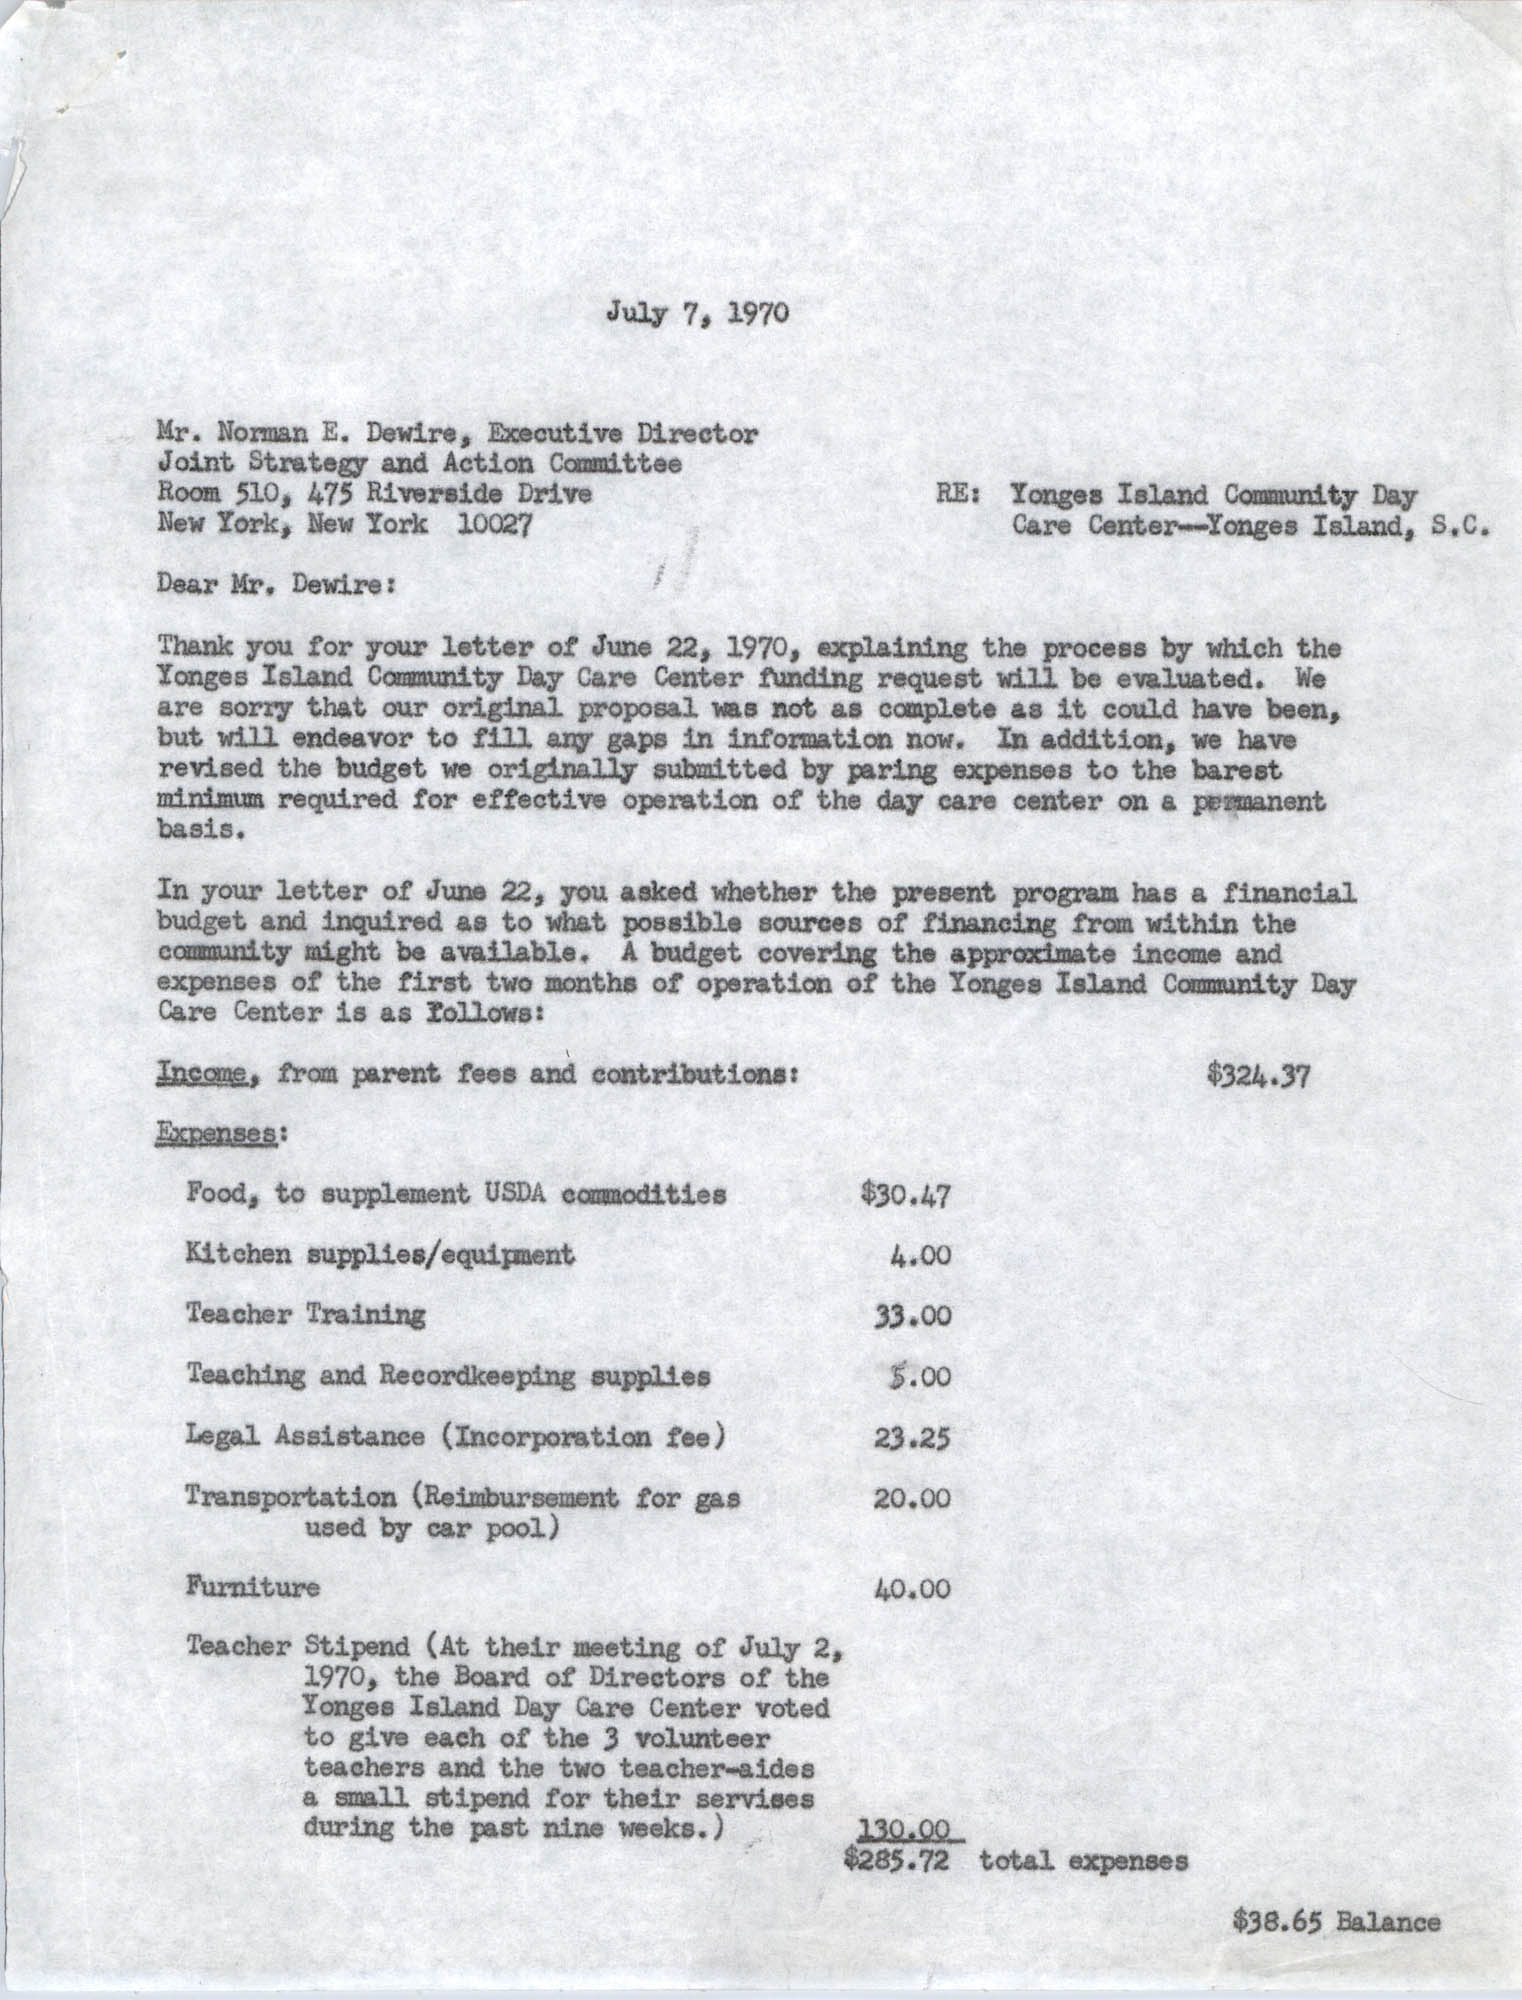 Letter from Bernice V. Robinson to Norman E. Dewire, July 7, 1970